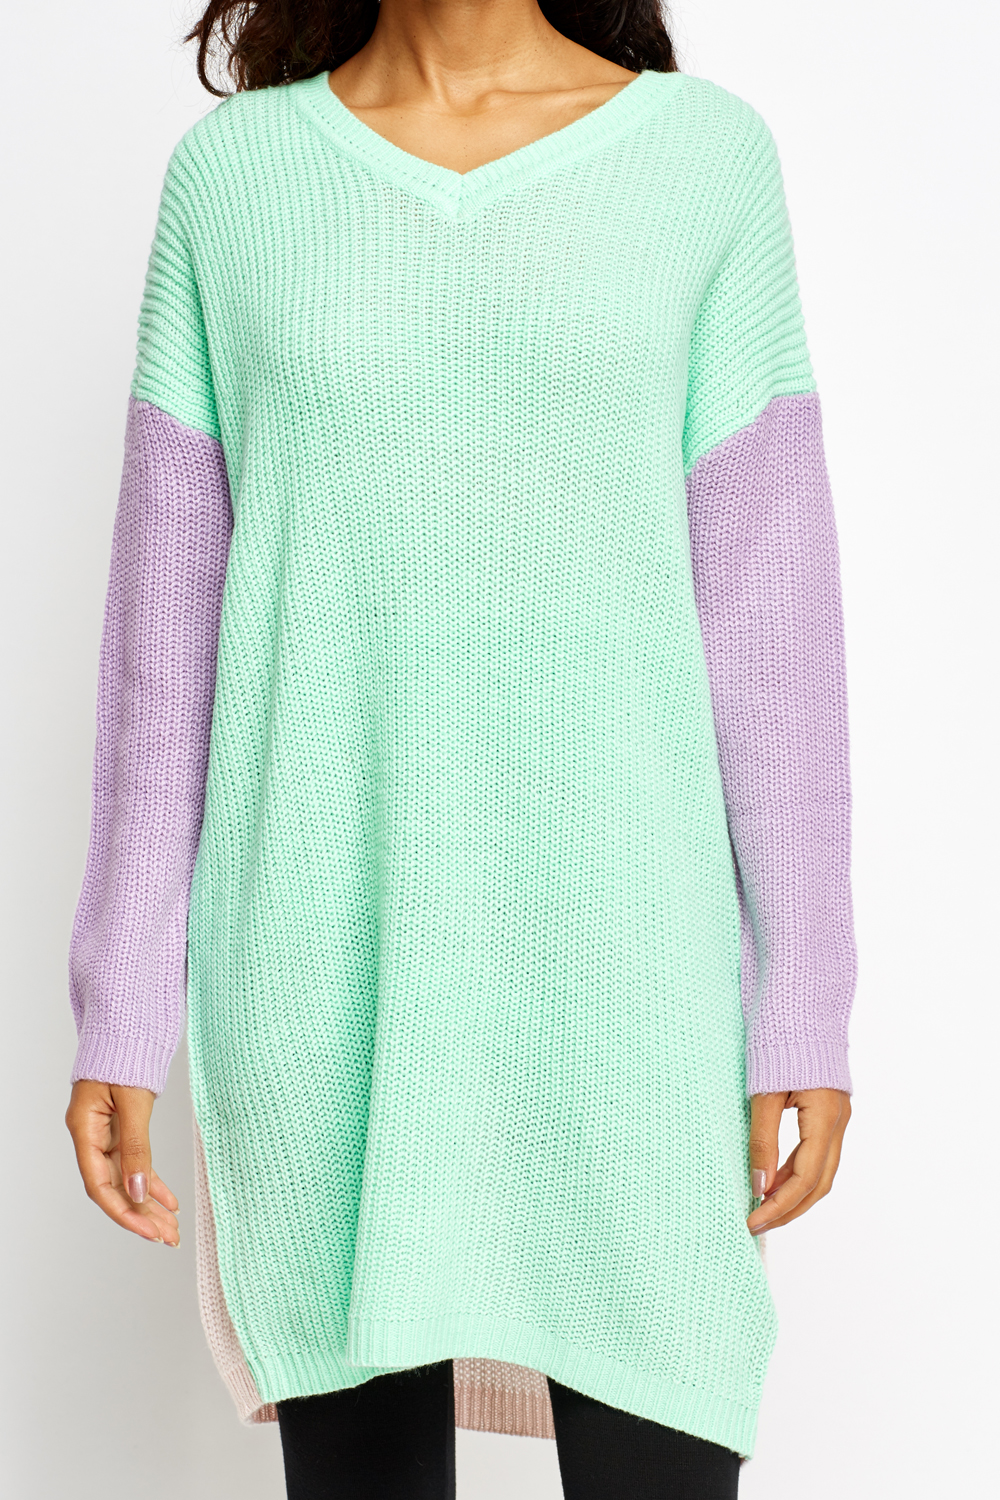 Colour Block Knitted Long Jumper - Green/Multi - Just ?5